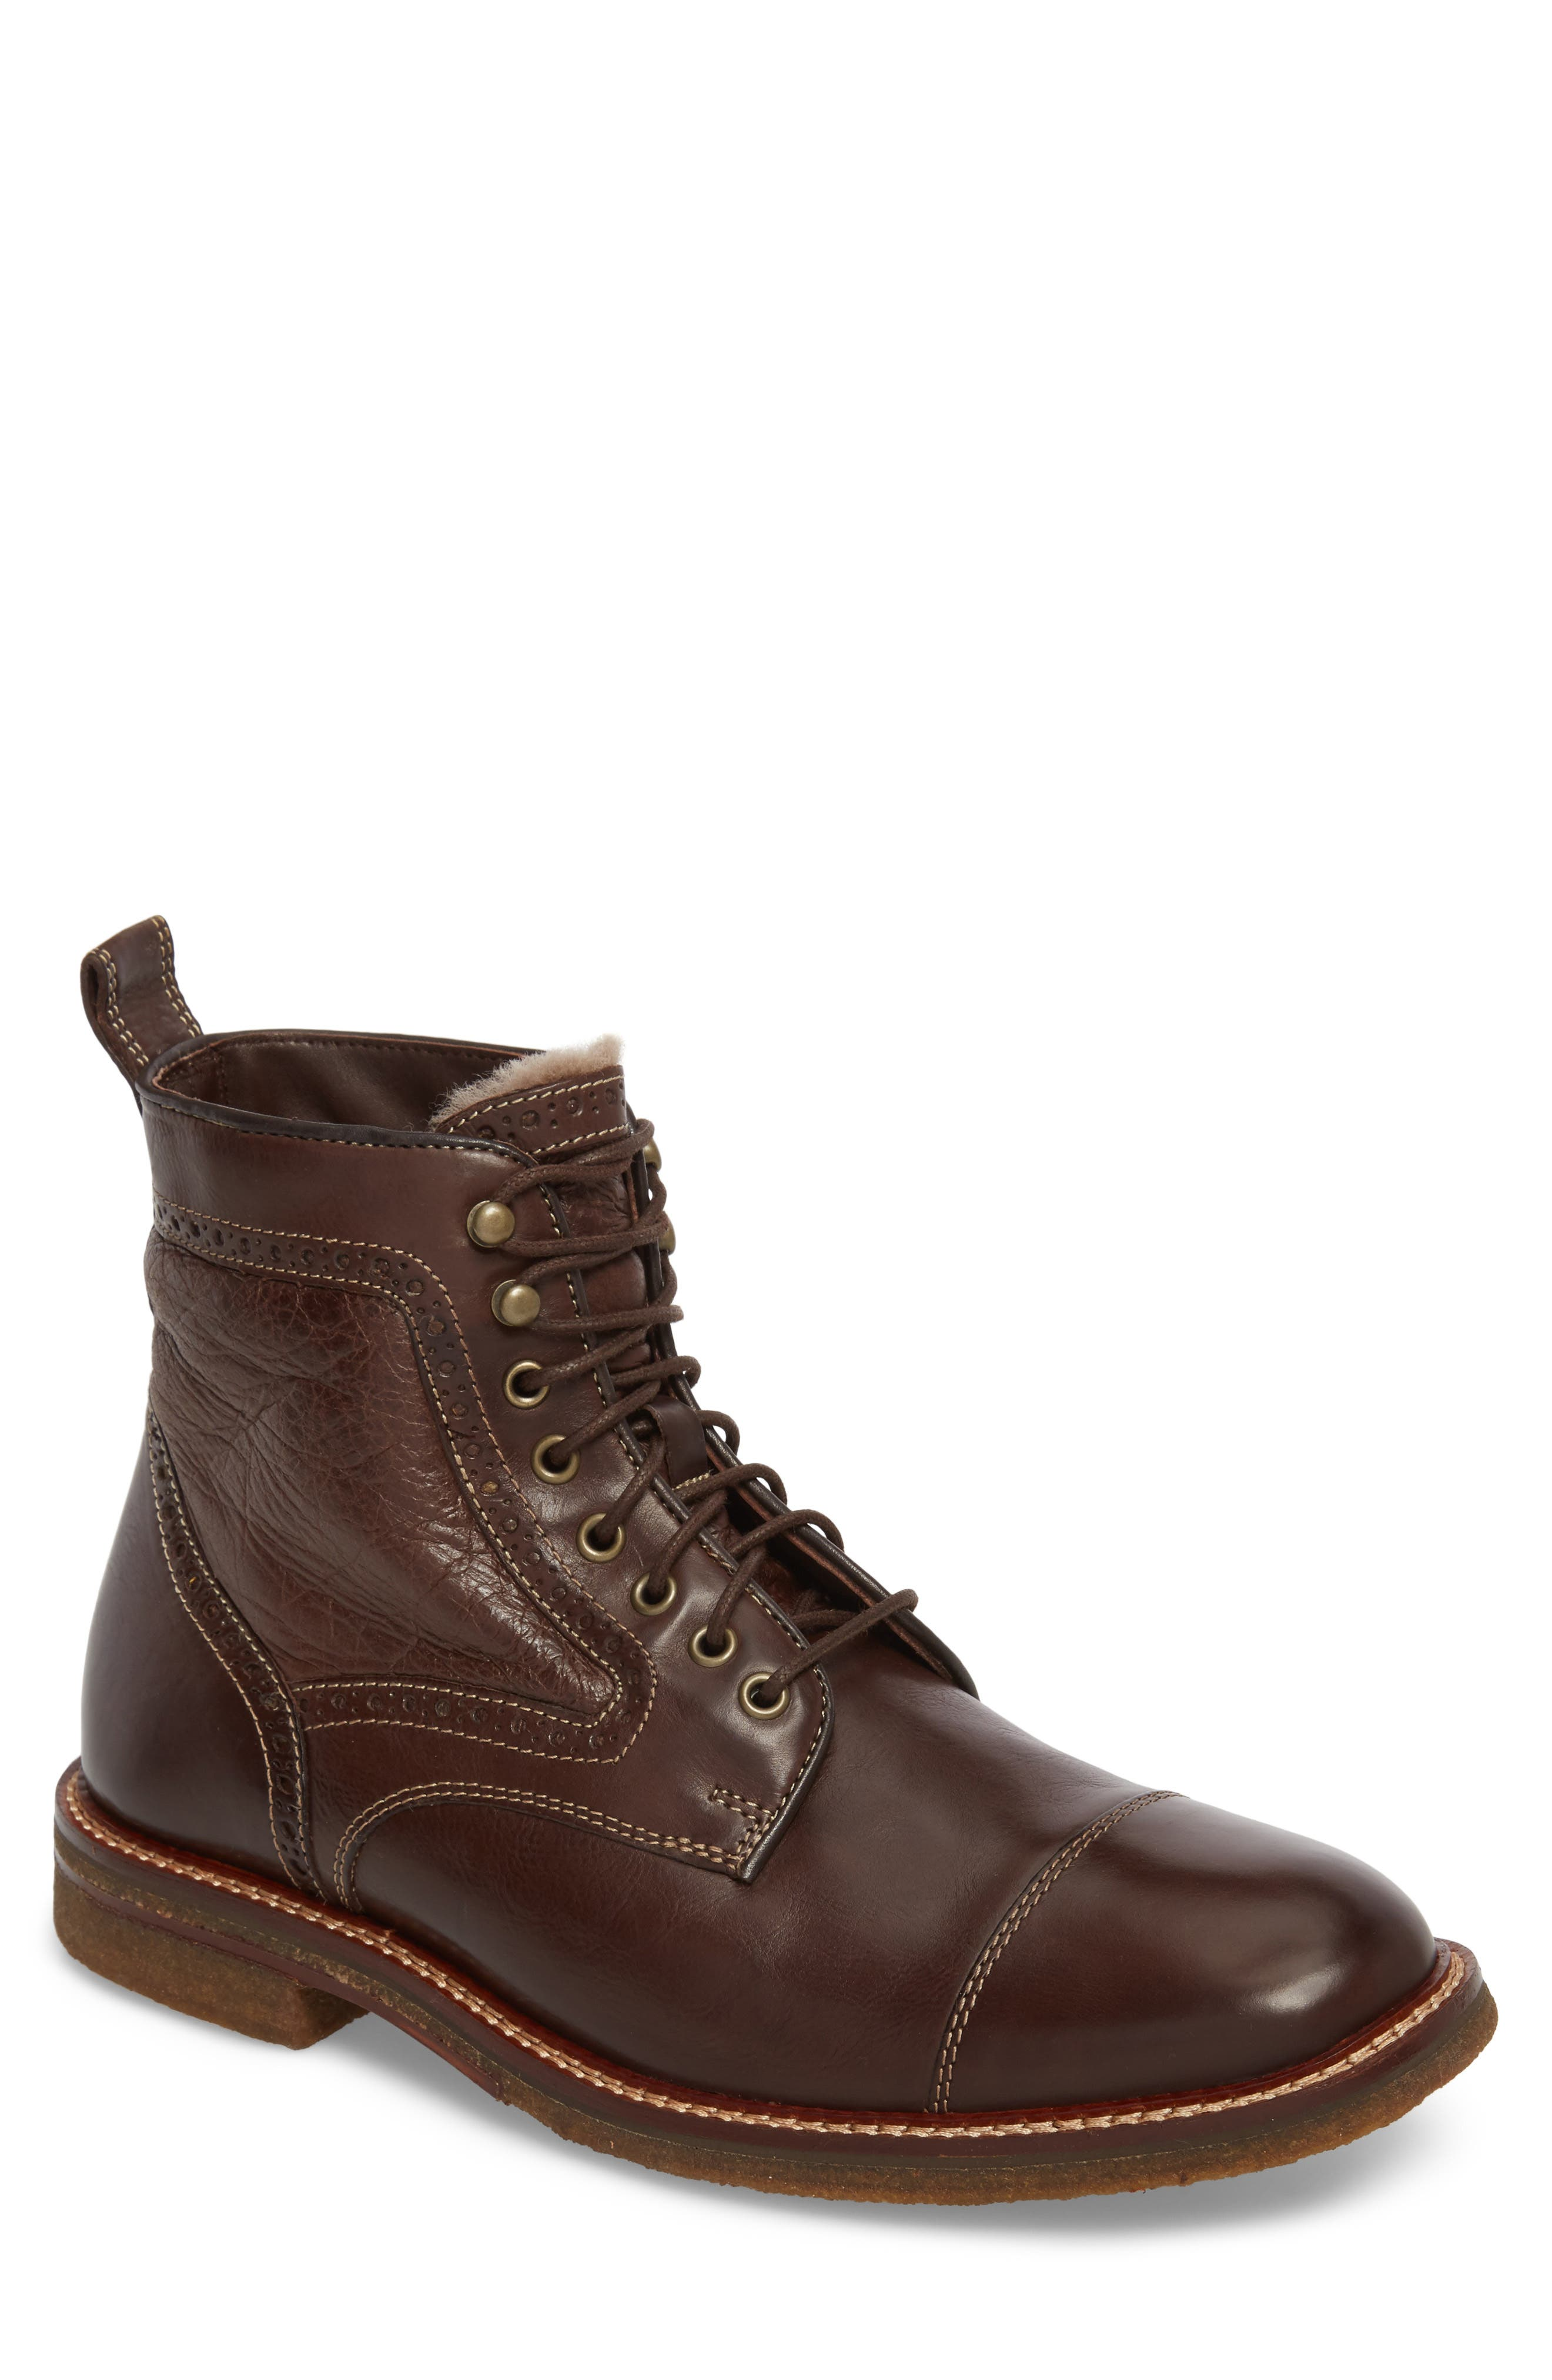 Forrester Genuine Shearling Lined Cap Toe Boot,                         Main,                         color,